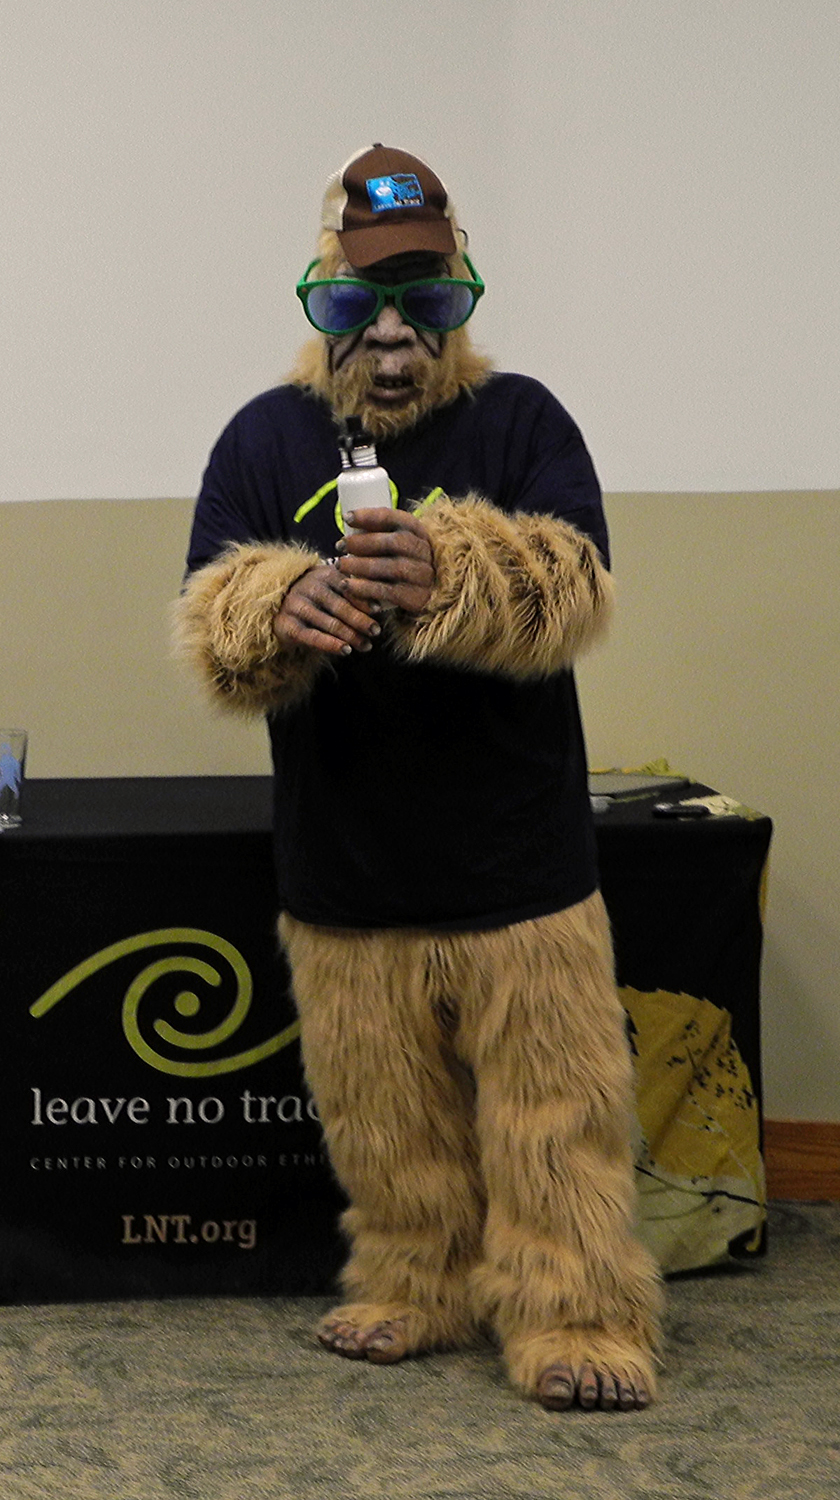 Bigfoot made a appearance to hand out goodies to those in attendance.